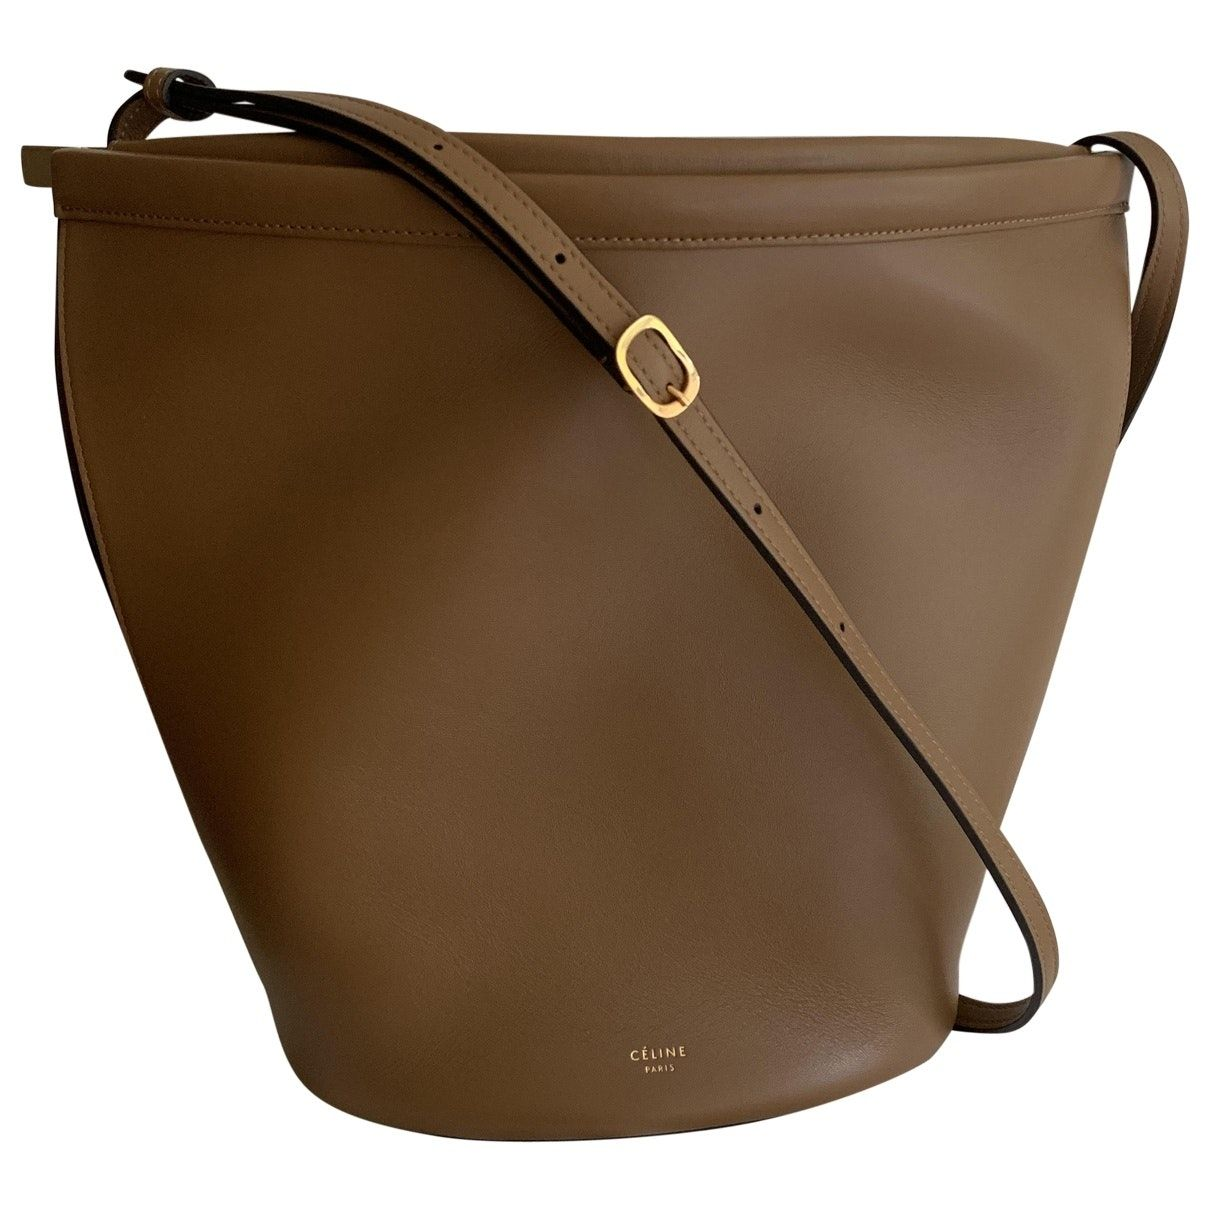 Old Celine In Clasp Bucket By Phoebe Last Collection Very Rare Light Color And Last Chance In Here Never In 2020 Leather Crossbody Bag Purses Crossbody Crossbody Bag